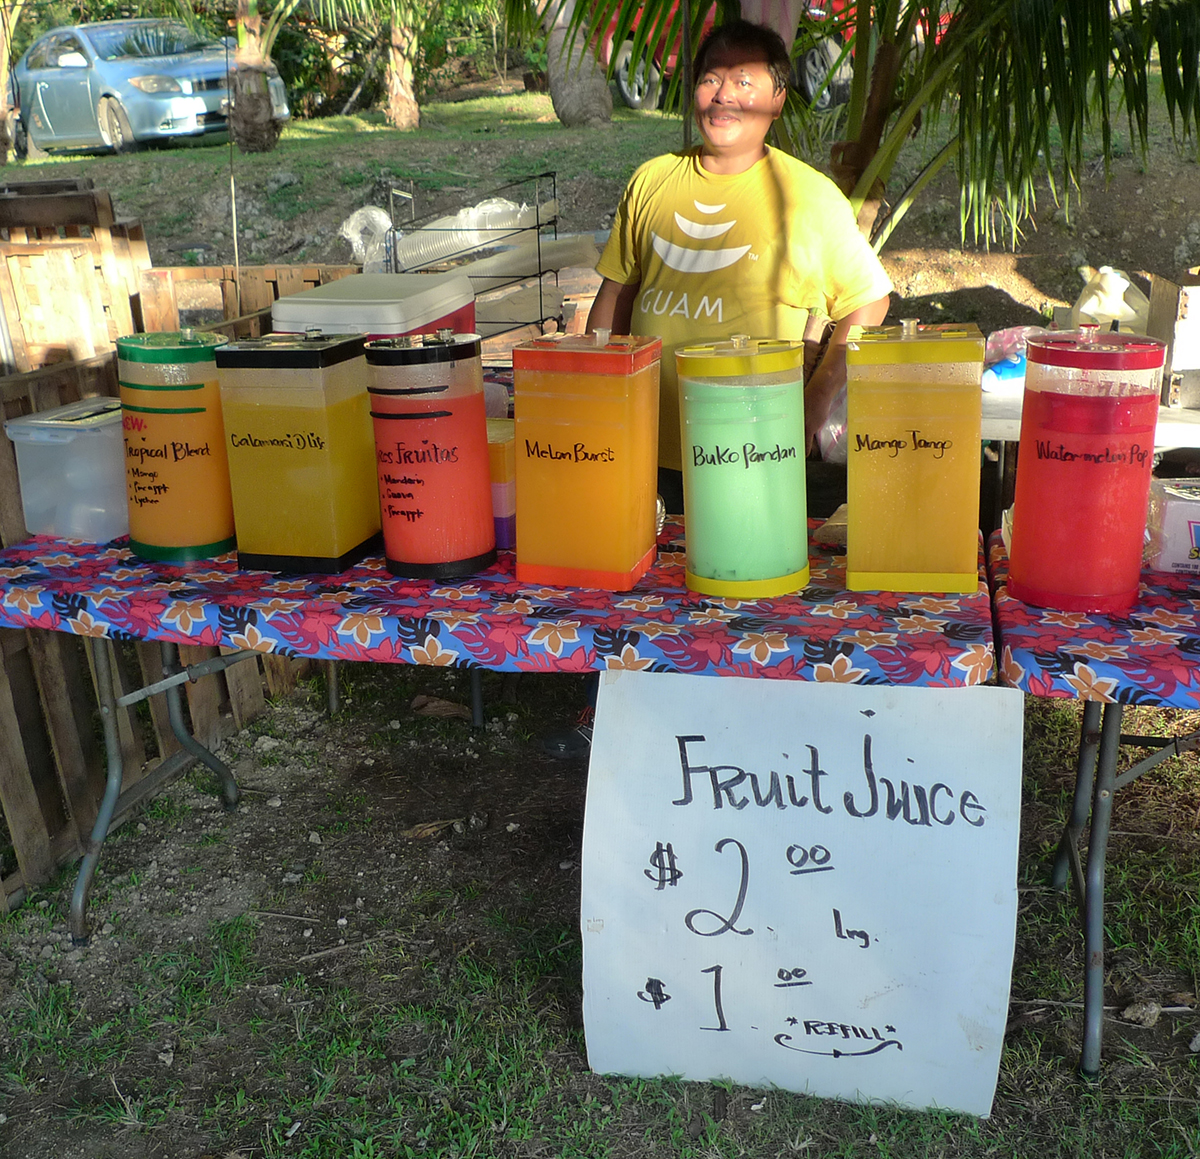 A vendor sells drinks made with local fruit